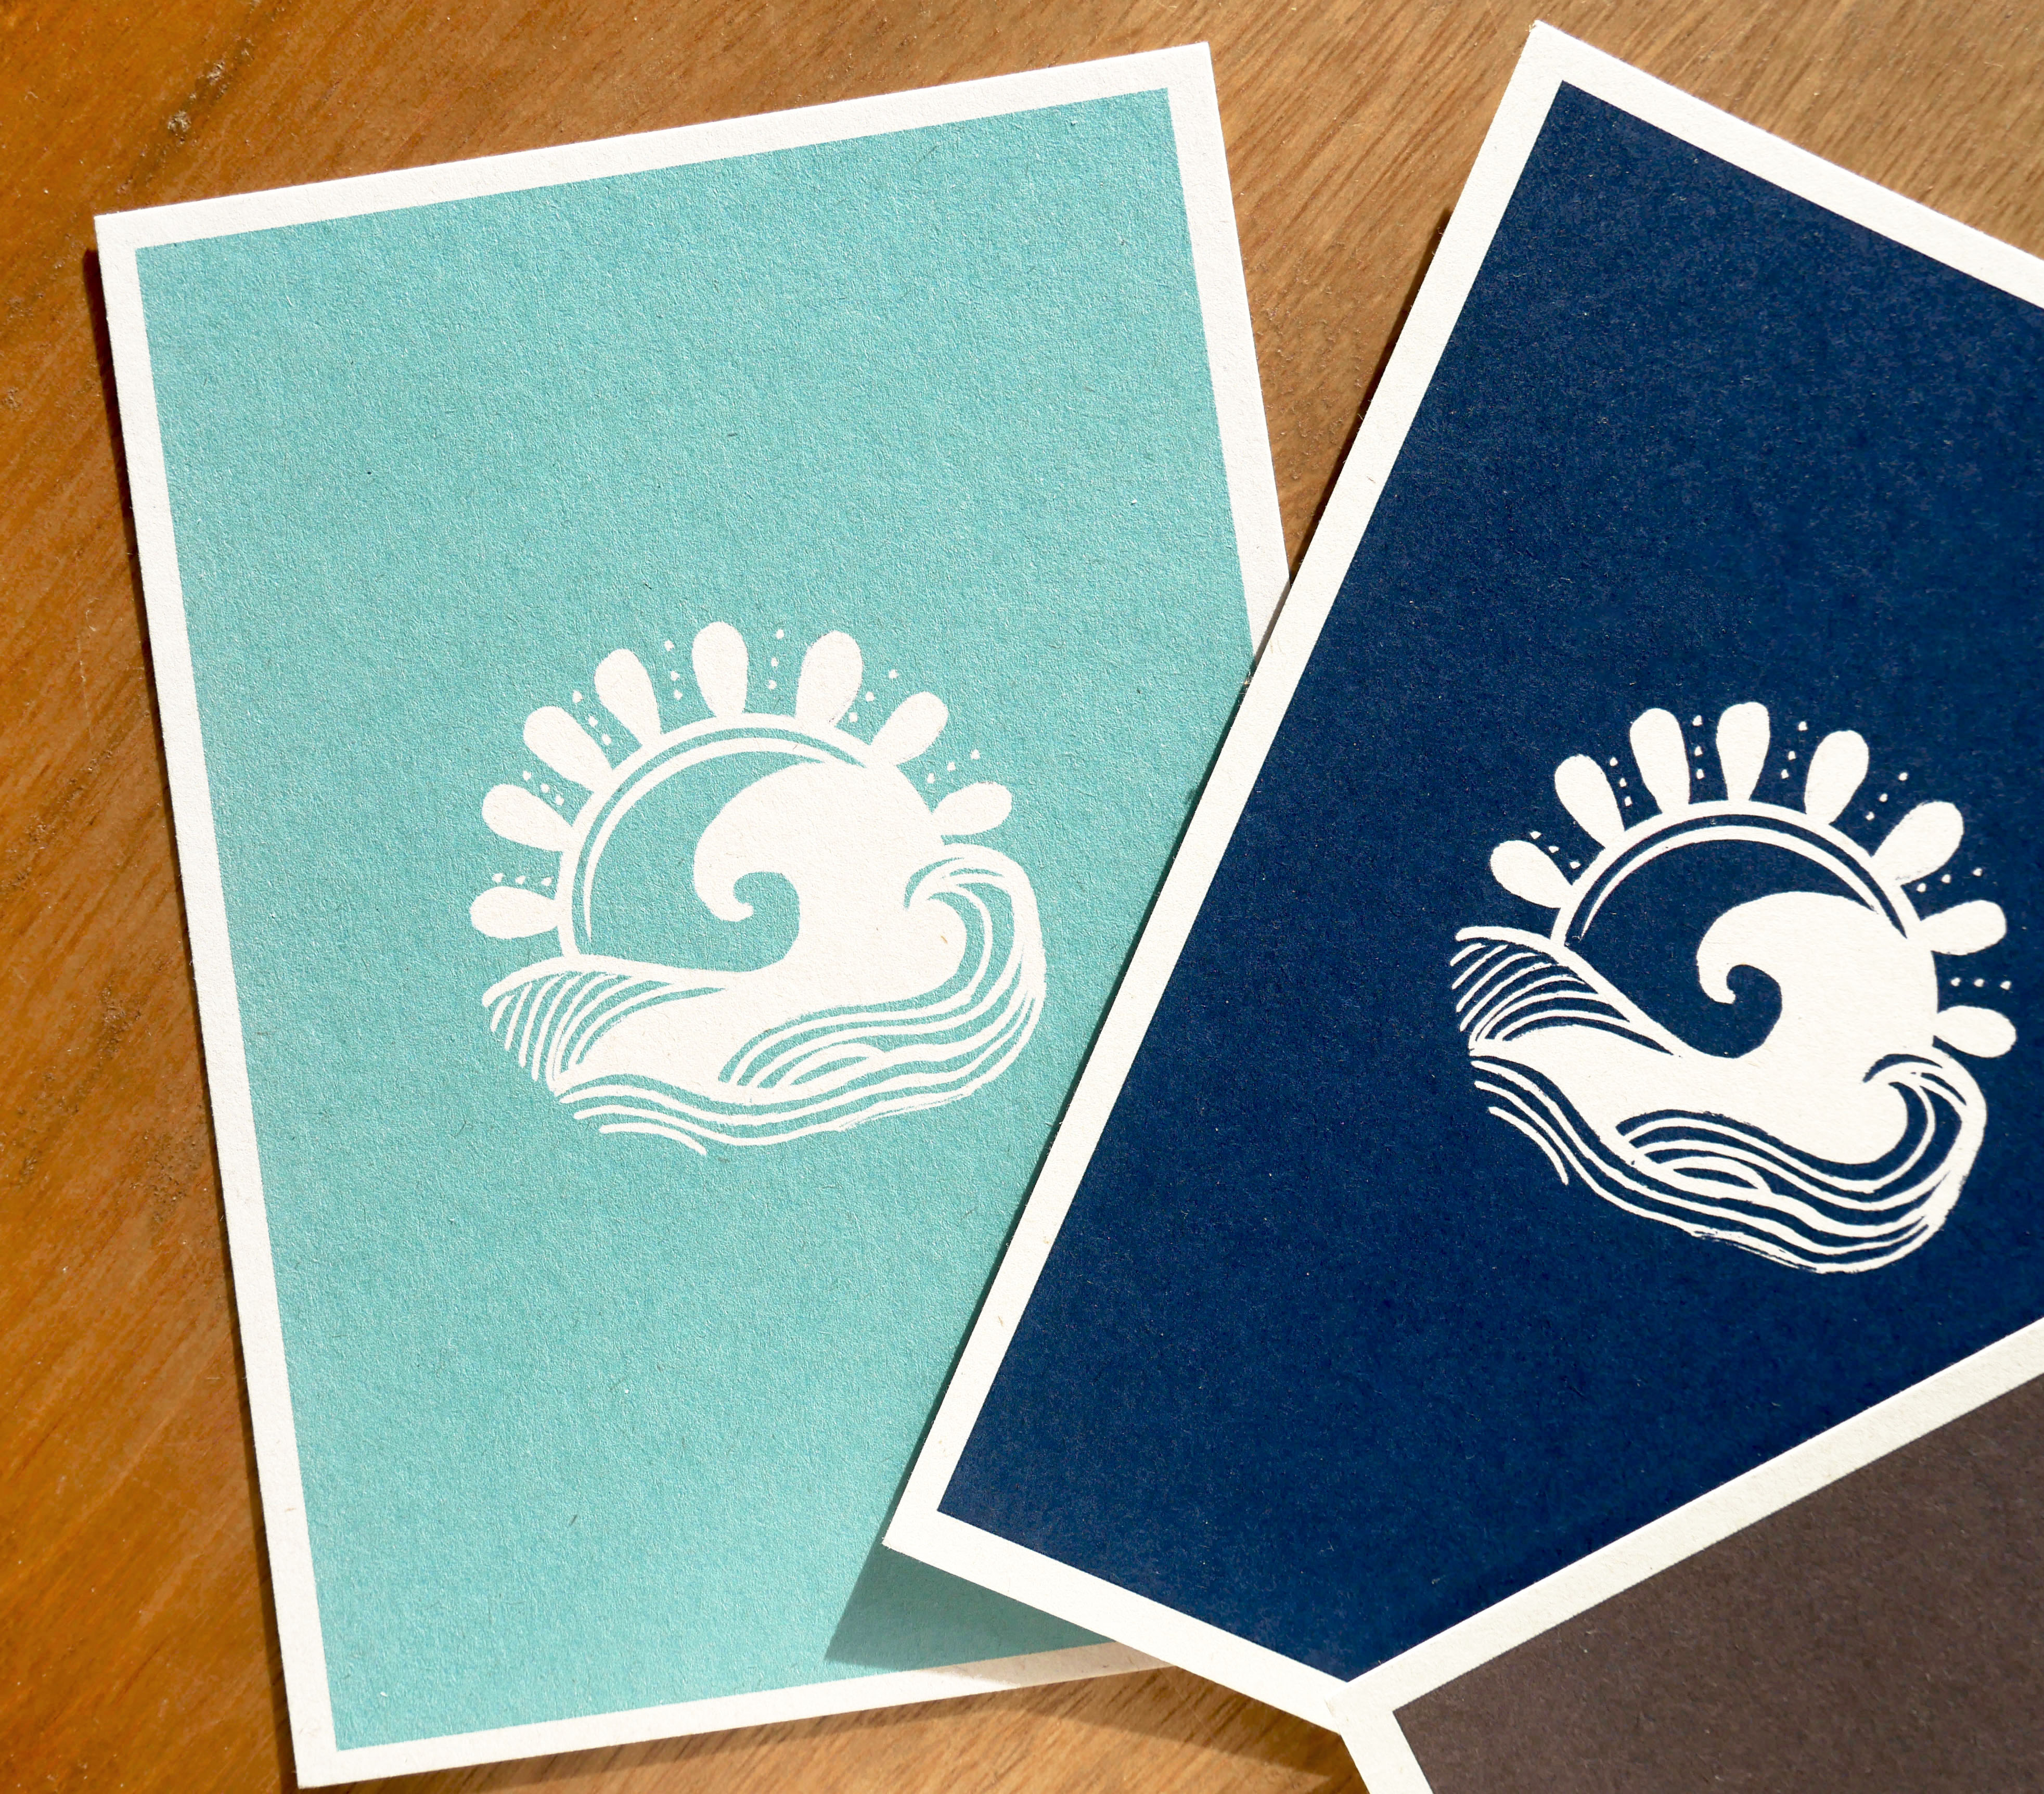 Tiffany Blue and Navy Blue Postcards representing a white wave in a white sun